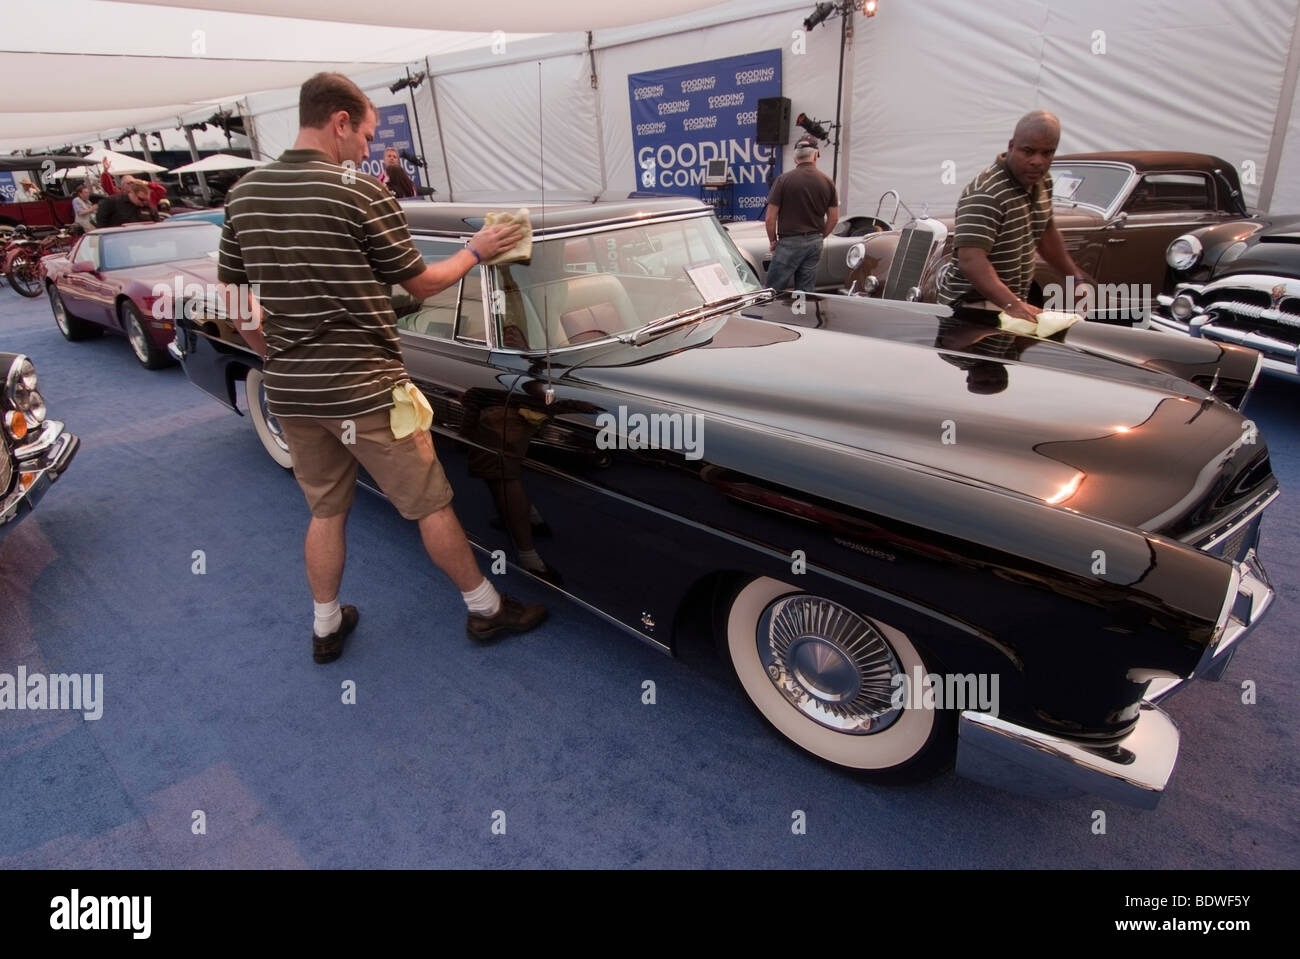 Mark Ii Stock Photos Images Alamy 1954 Lincoln Continental Employees Cleaning A 1957 Before The Gooding Company Auction In Pebble Beach